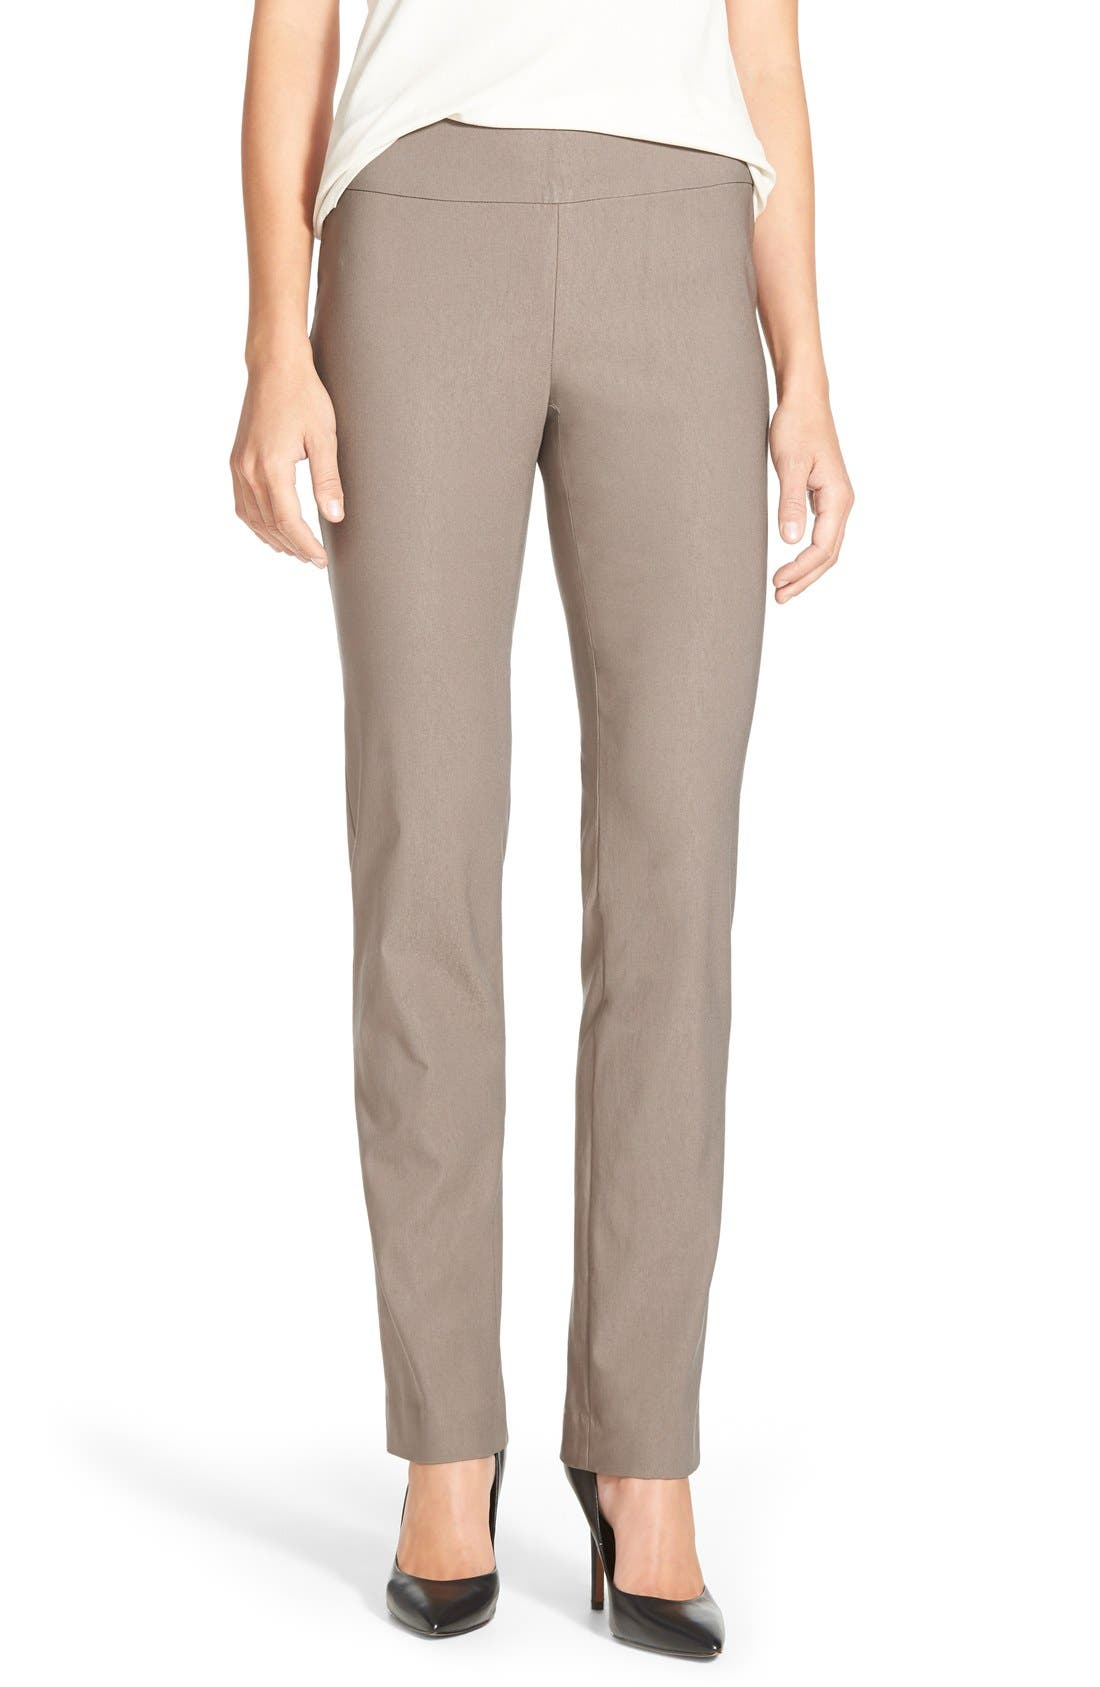 Alternate Image 1 Selected - NIC+ZOE 'The Wonder Stretch' Straight Leg Pants (Regular & Petite)